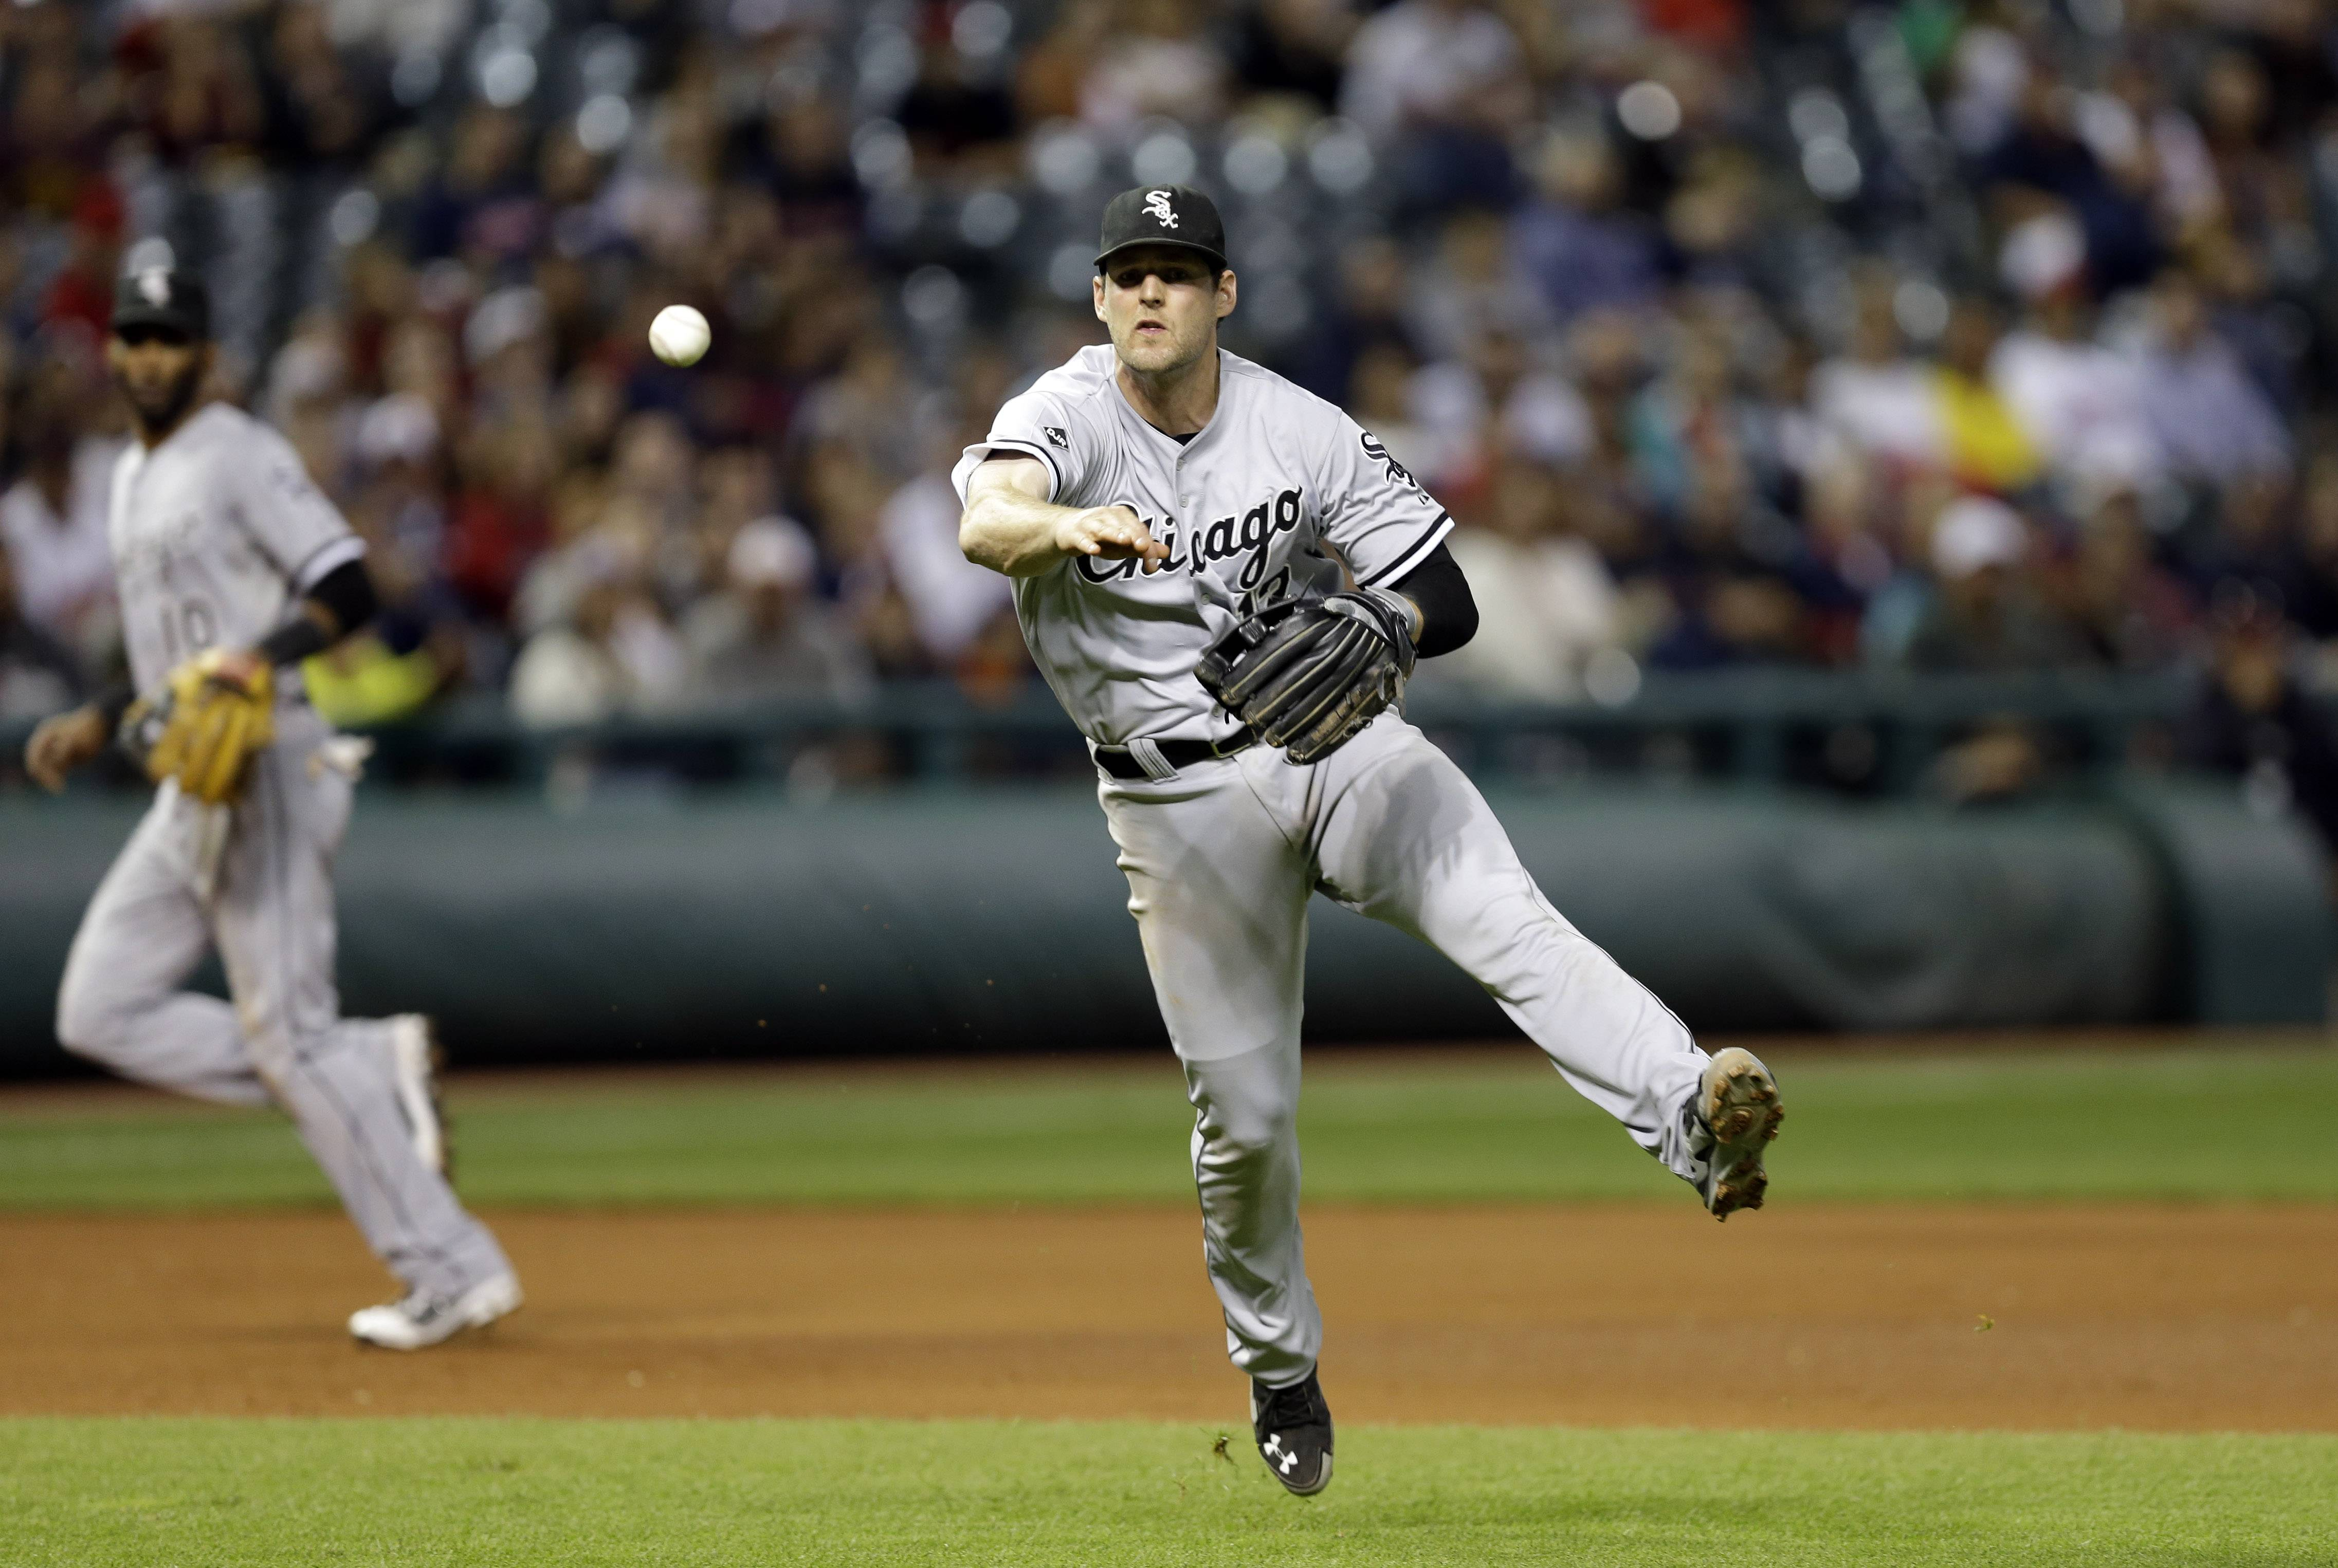 Chicago White Sox third baseman Conor Gillaspie throws to first on a ground ball by Cleveland Indians' Jose Ramirez in the fifth inning of a baseball game Saturday, Sept. 6, 2014, in Cleveland. Ramirez was called safe which was upheld on replay review.